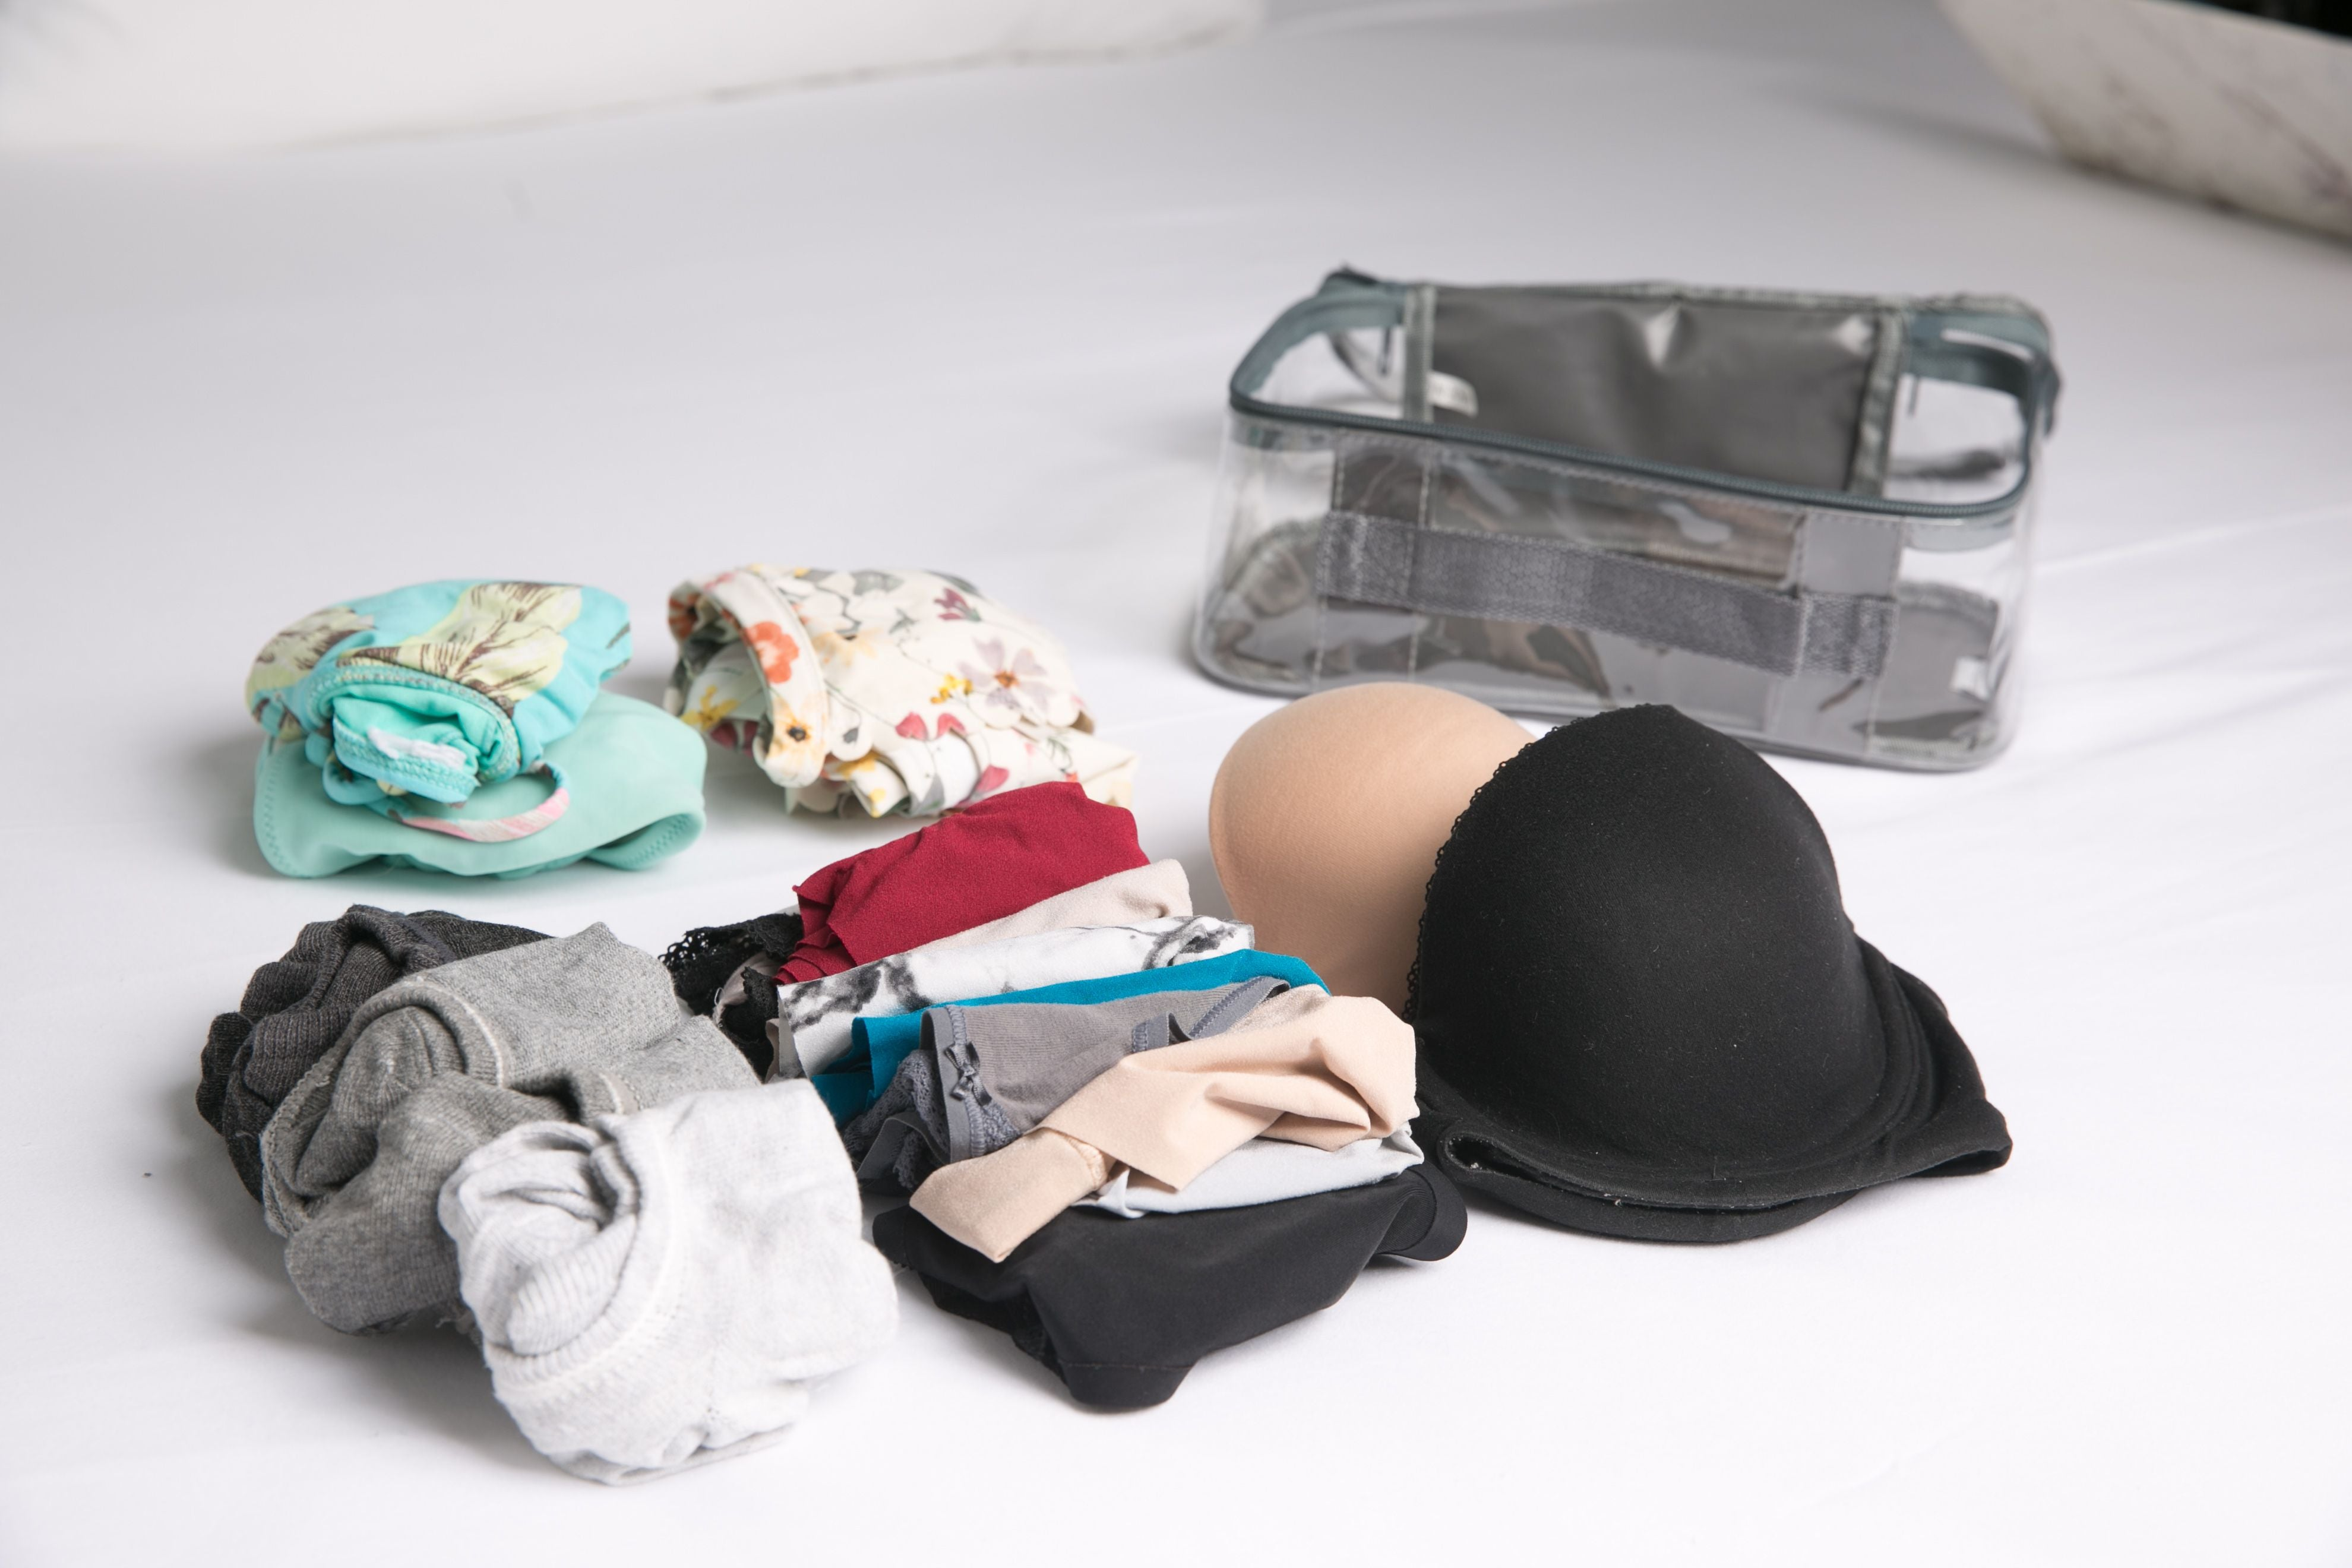 Undergarments rolled beside small packing cube